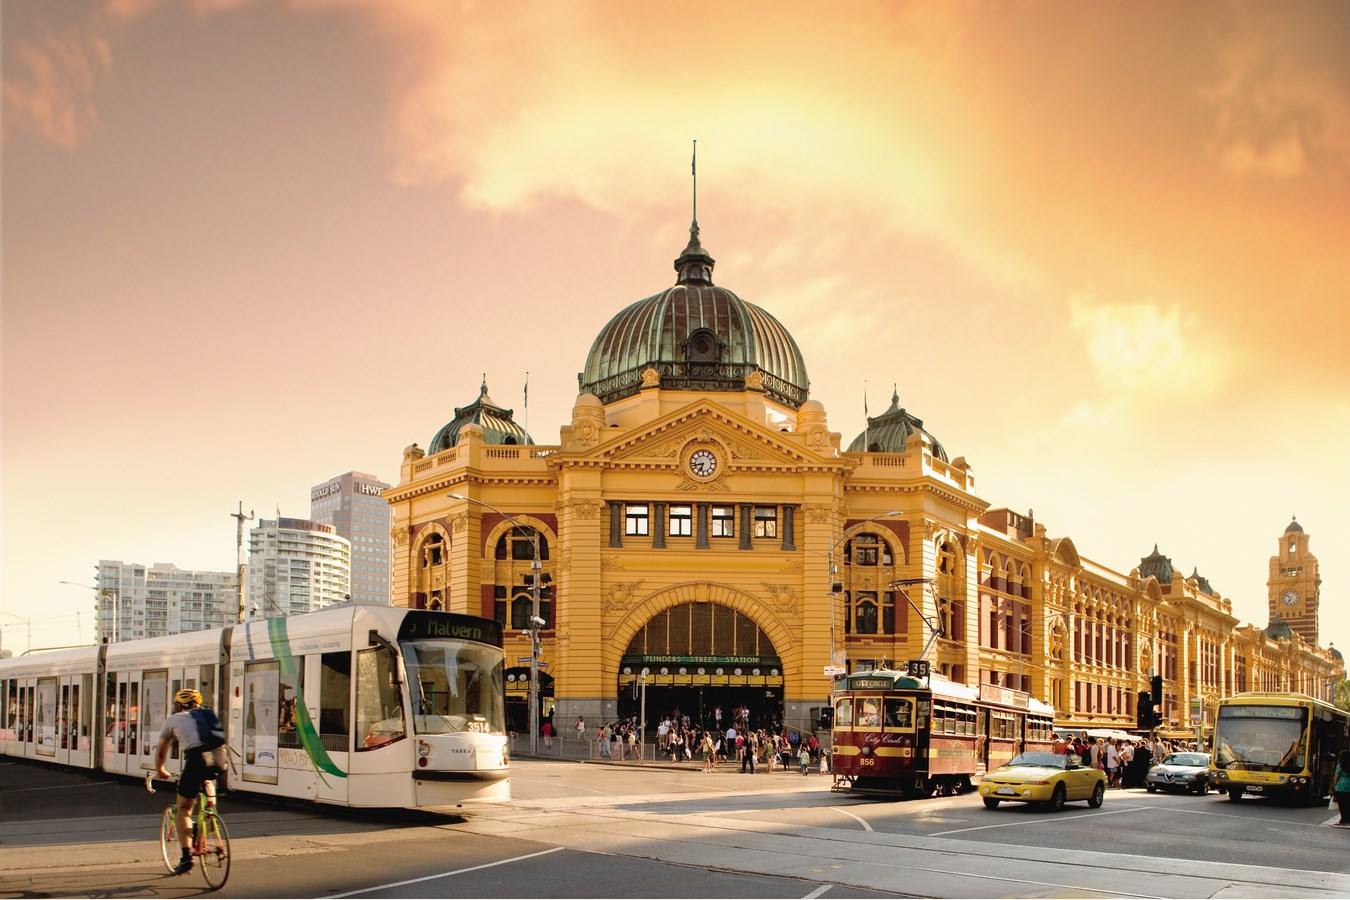 25 Iconic Projects by Herzog & de Meuron every Architect Should Know - FLINDERS STREET STATION, MELBOURNE, AUSTRALIA - Sheet2